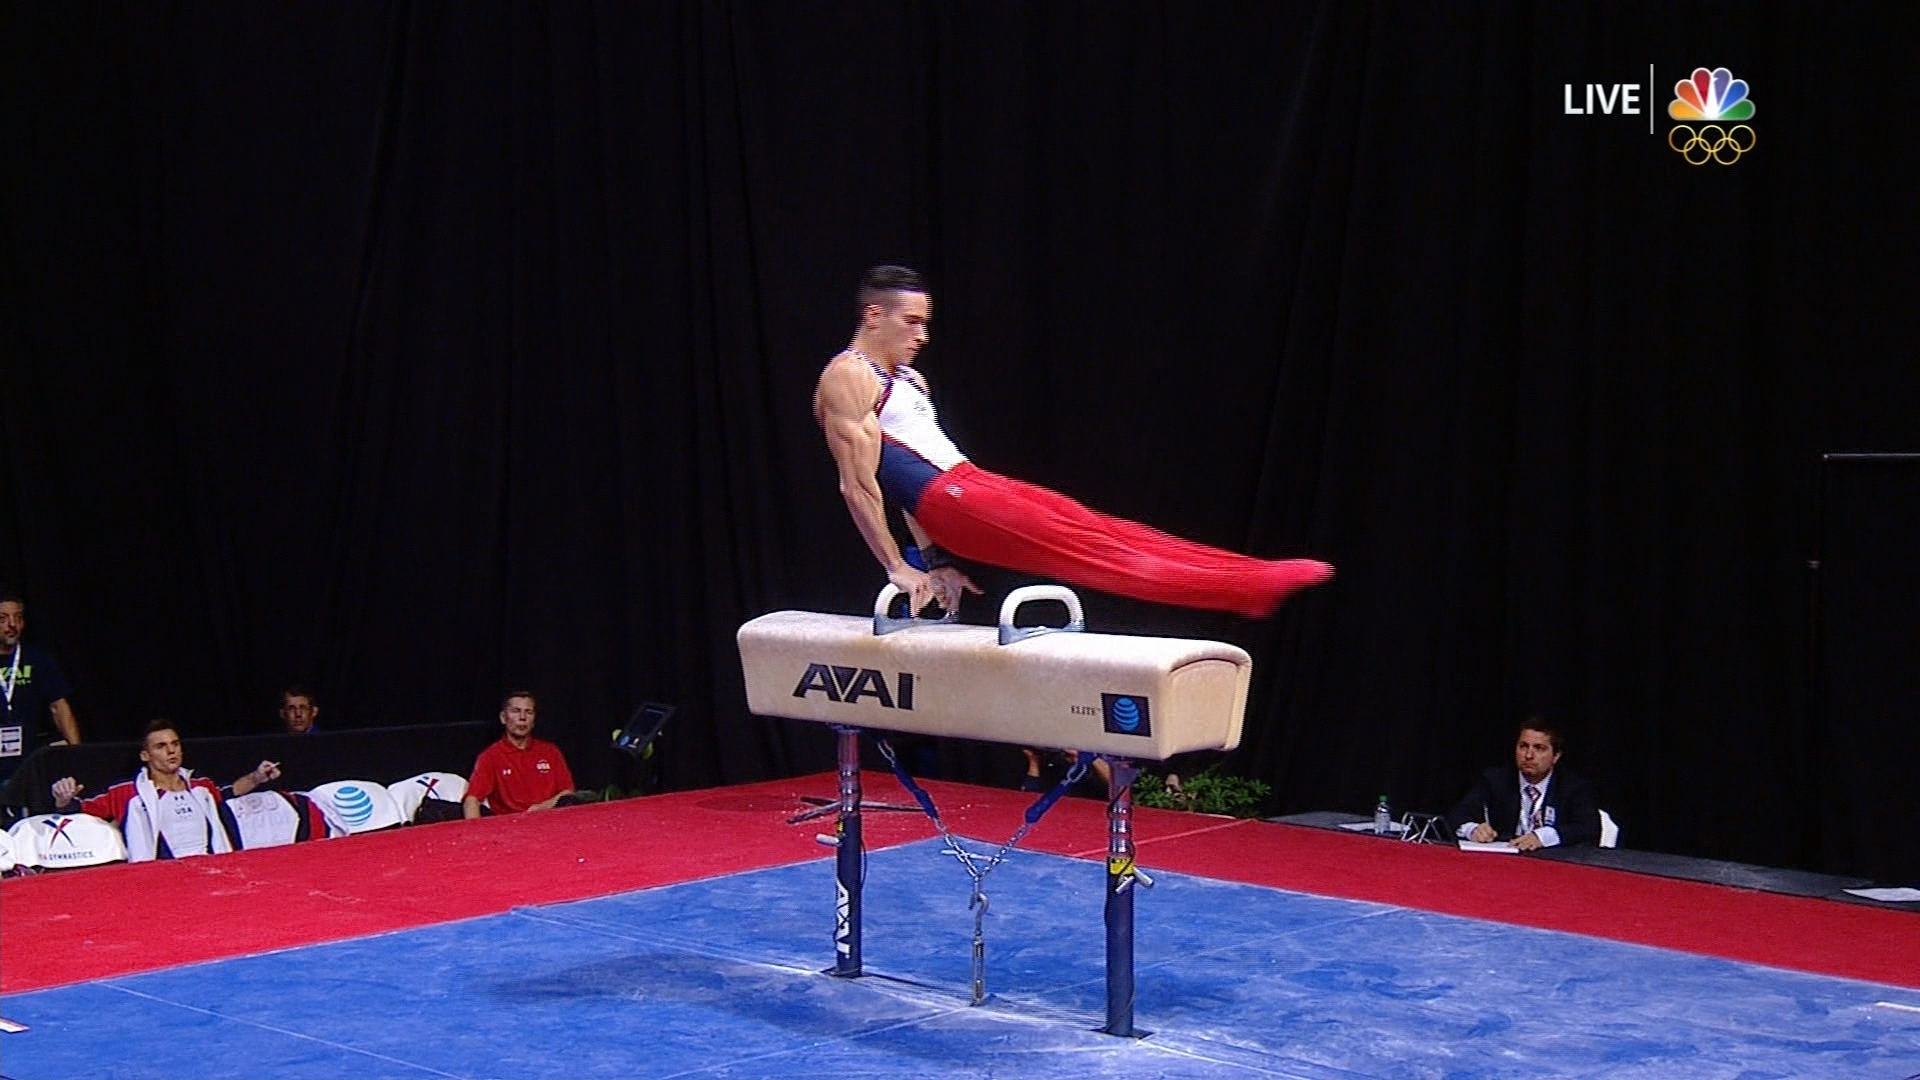 olympic trials naddour hits tricky pommel horse routine nbc sports